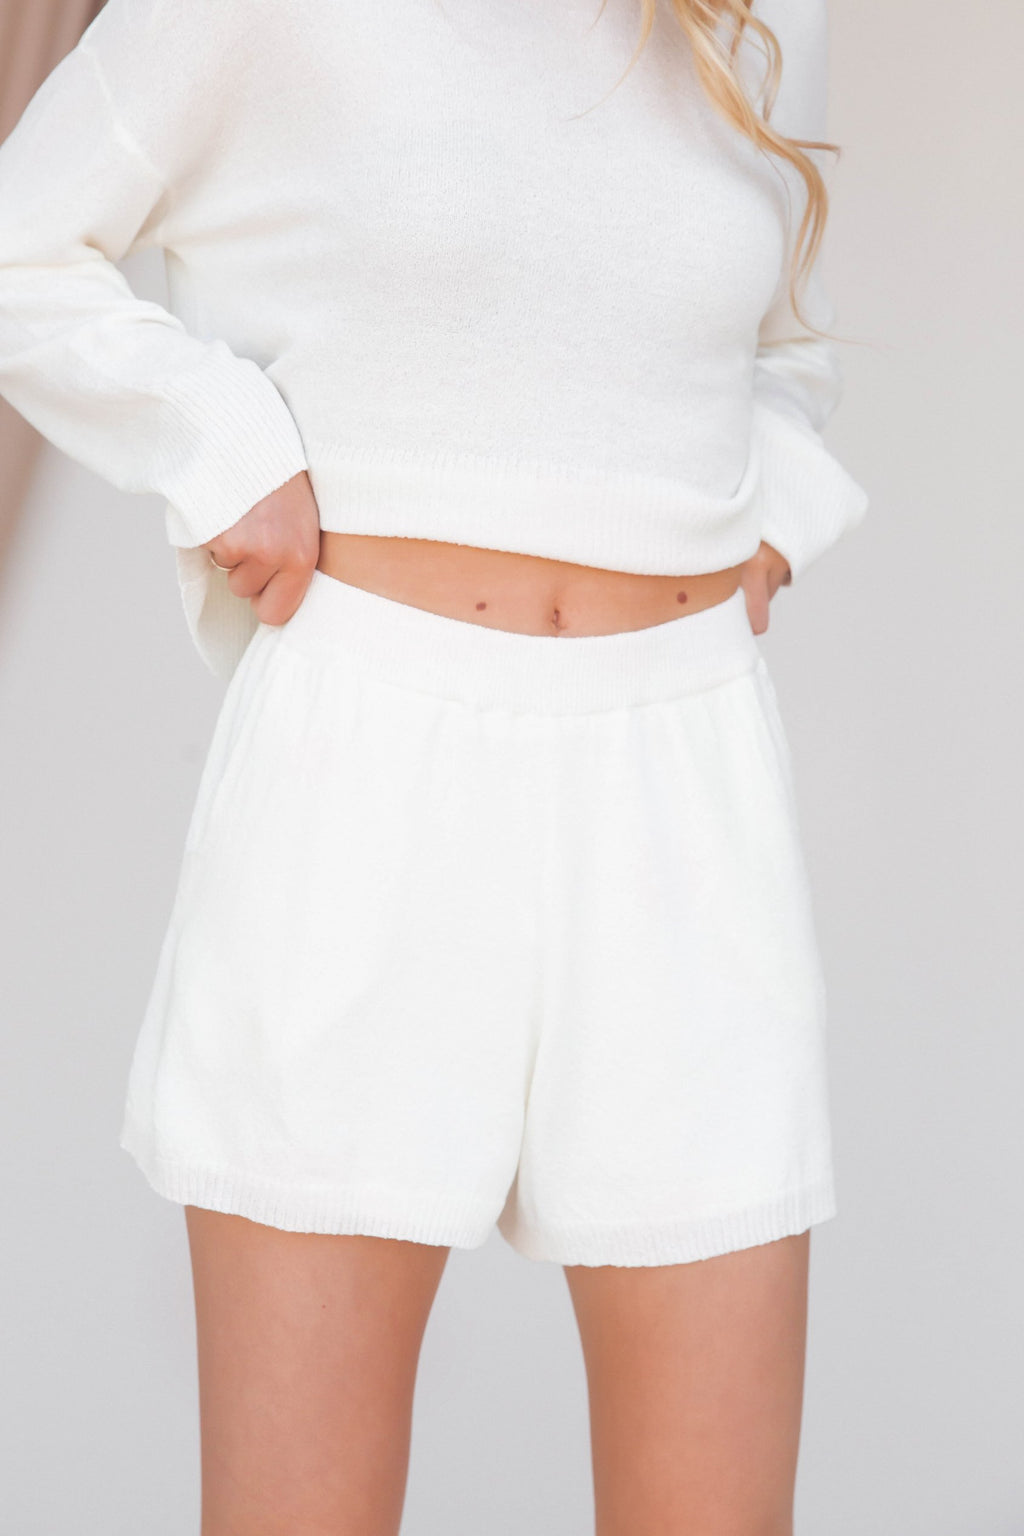 Relaxing Weekend Light Knit Shorts - LLACIE